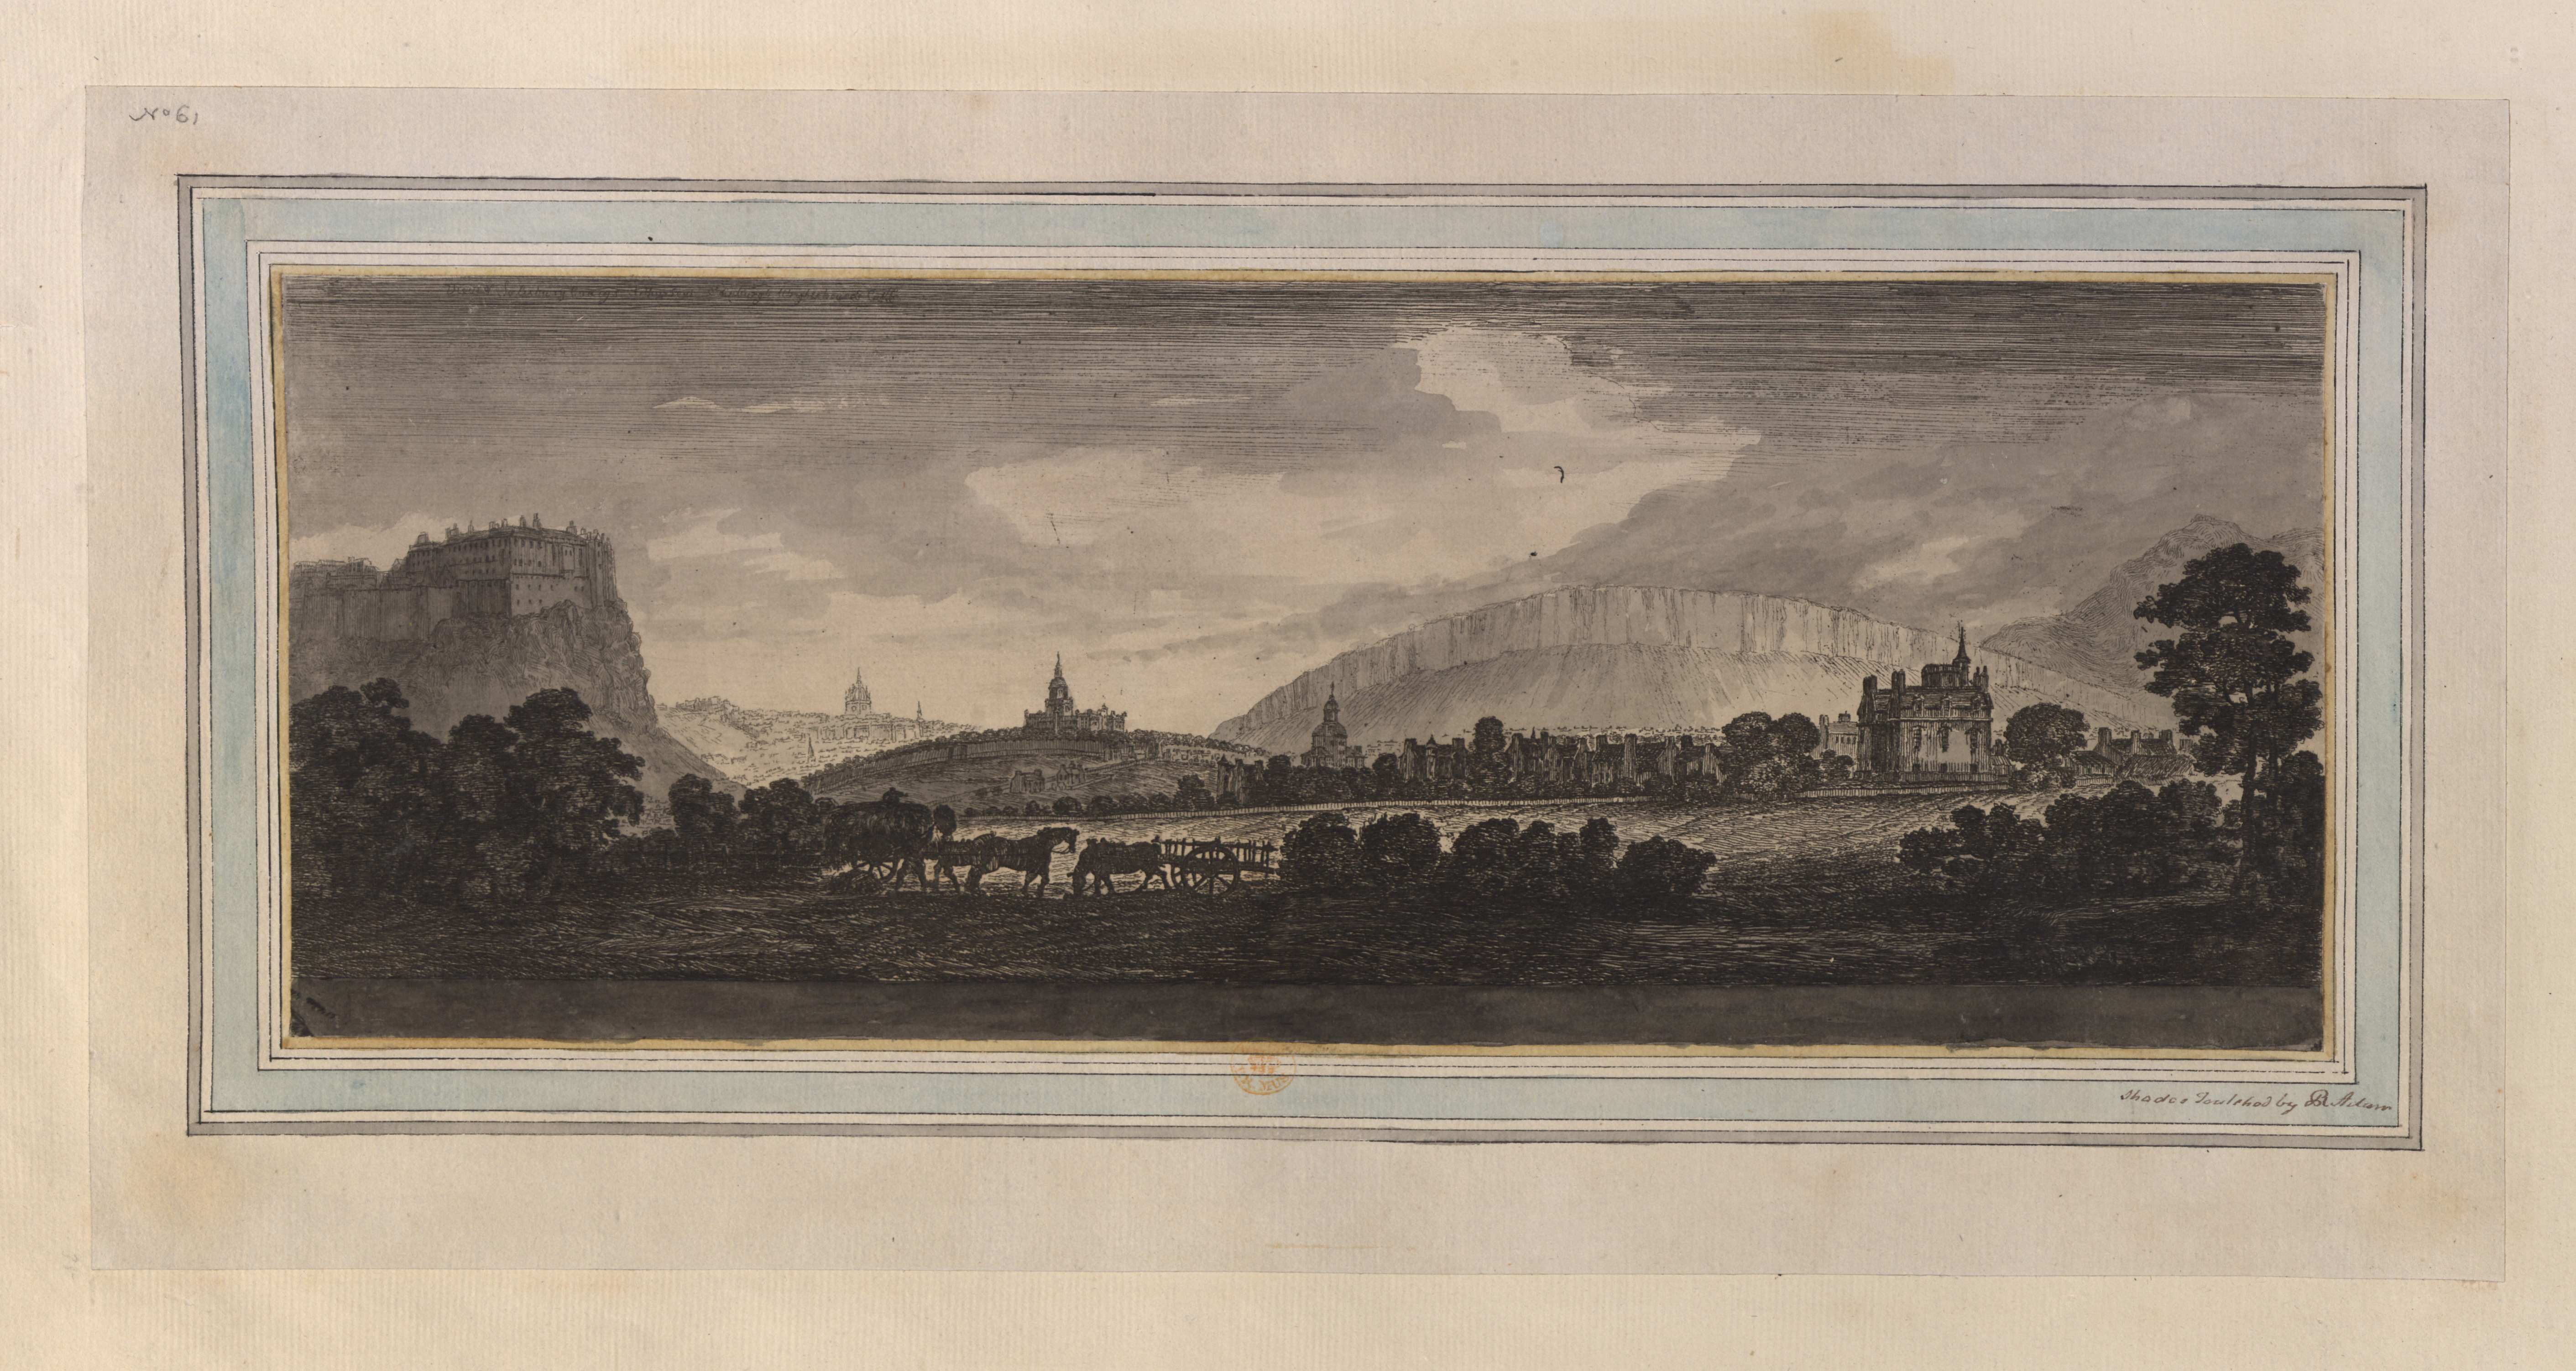 Inscribed 'No61 ' in the upper left-hand corner of the mount. Horses and carts near trees in the foreground; fields in the middle ground; Edinburgh behind; Salisbury Crags and Arthur's Seat in the distance. Etched with title in the upper left-hand corner. Hand coloured by Robert Adam. Inscribed 'Shades touched by R. Adam' in black ink in the lower right-hand corner of the mount.